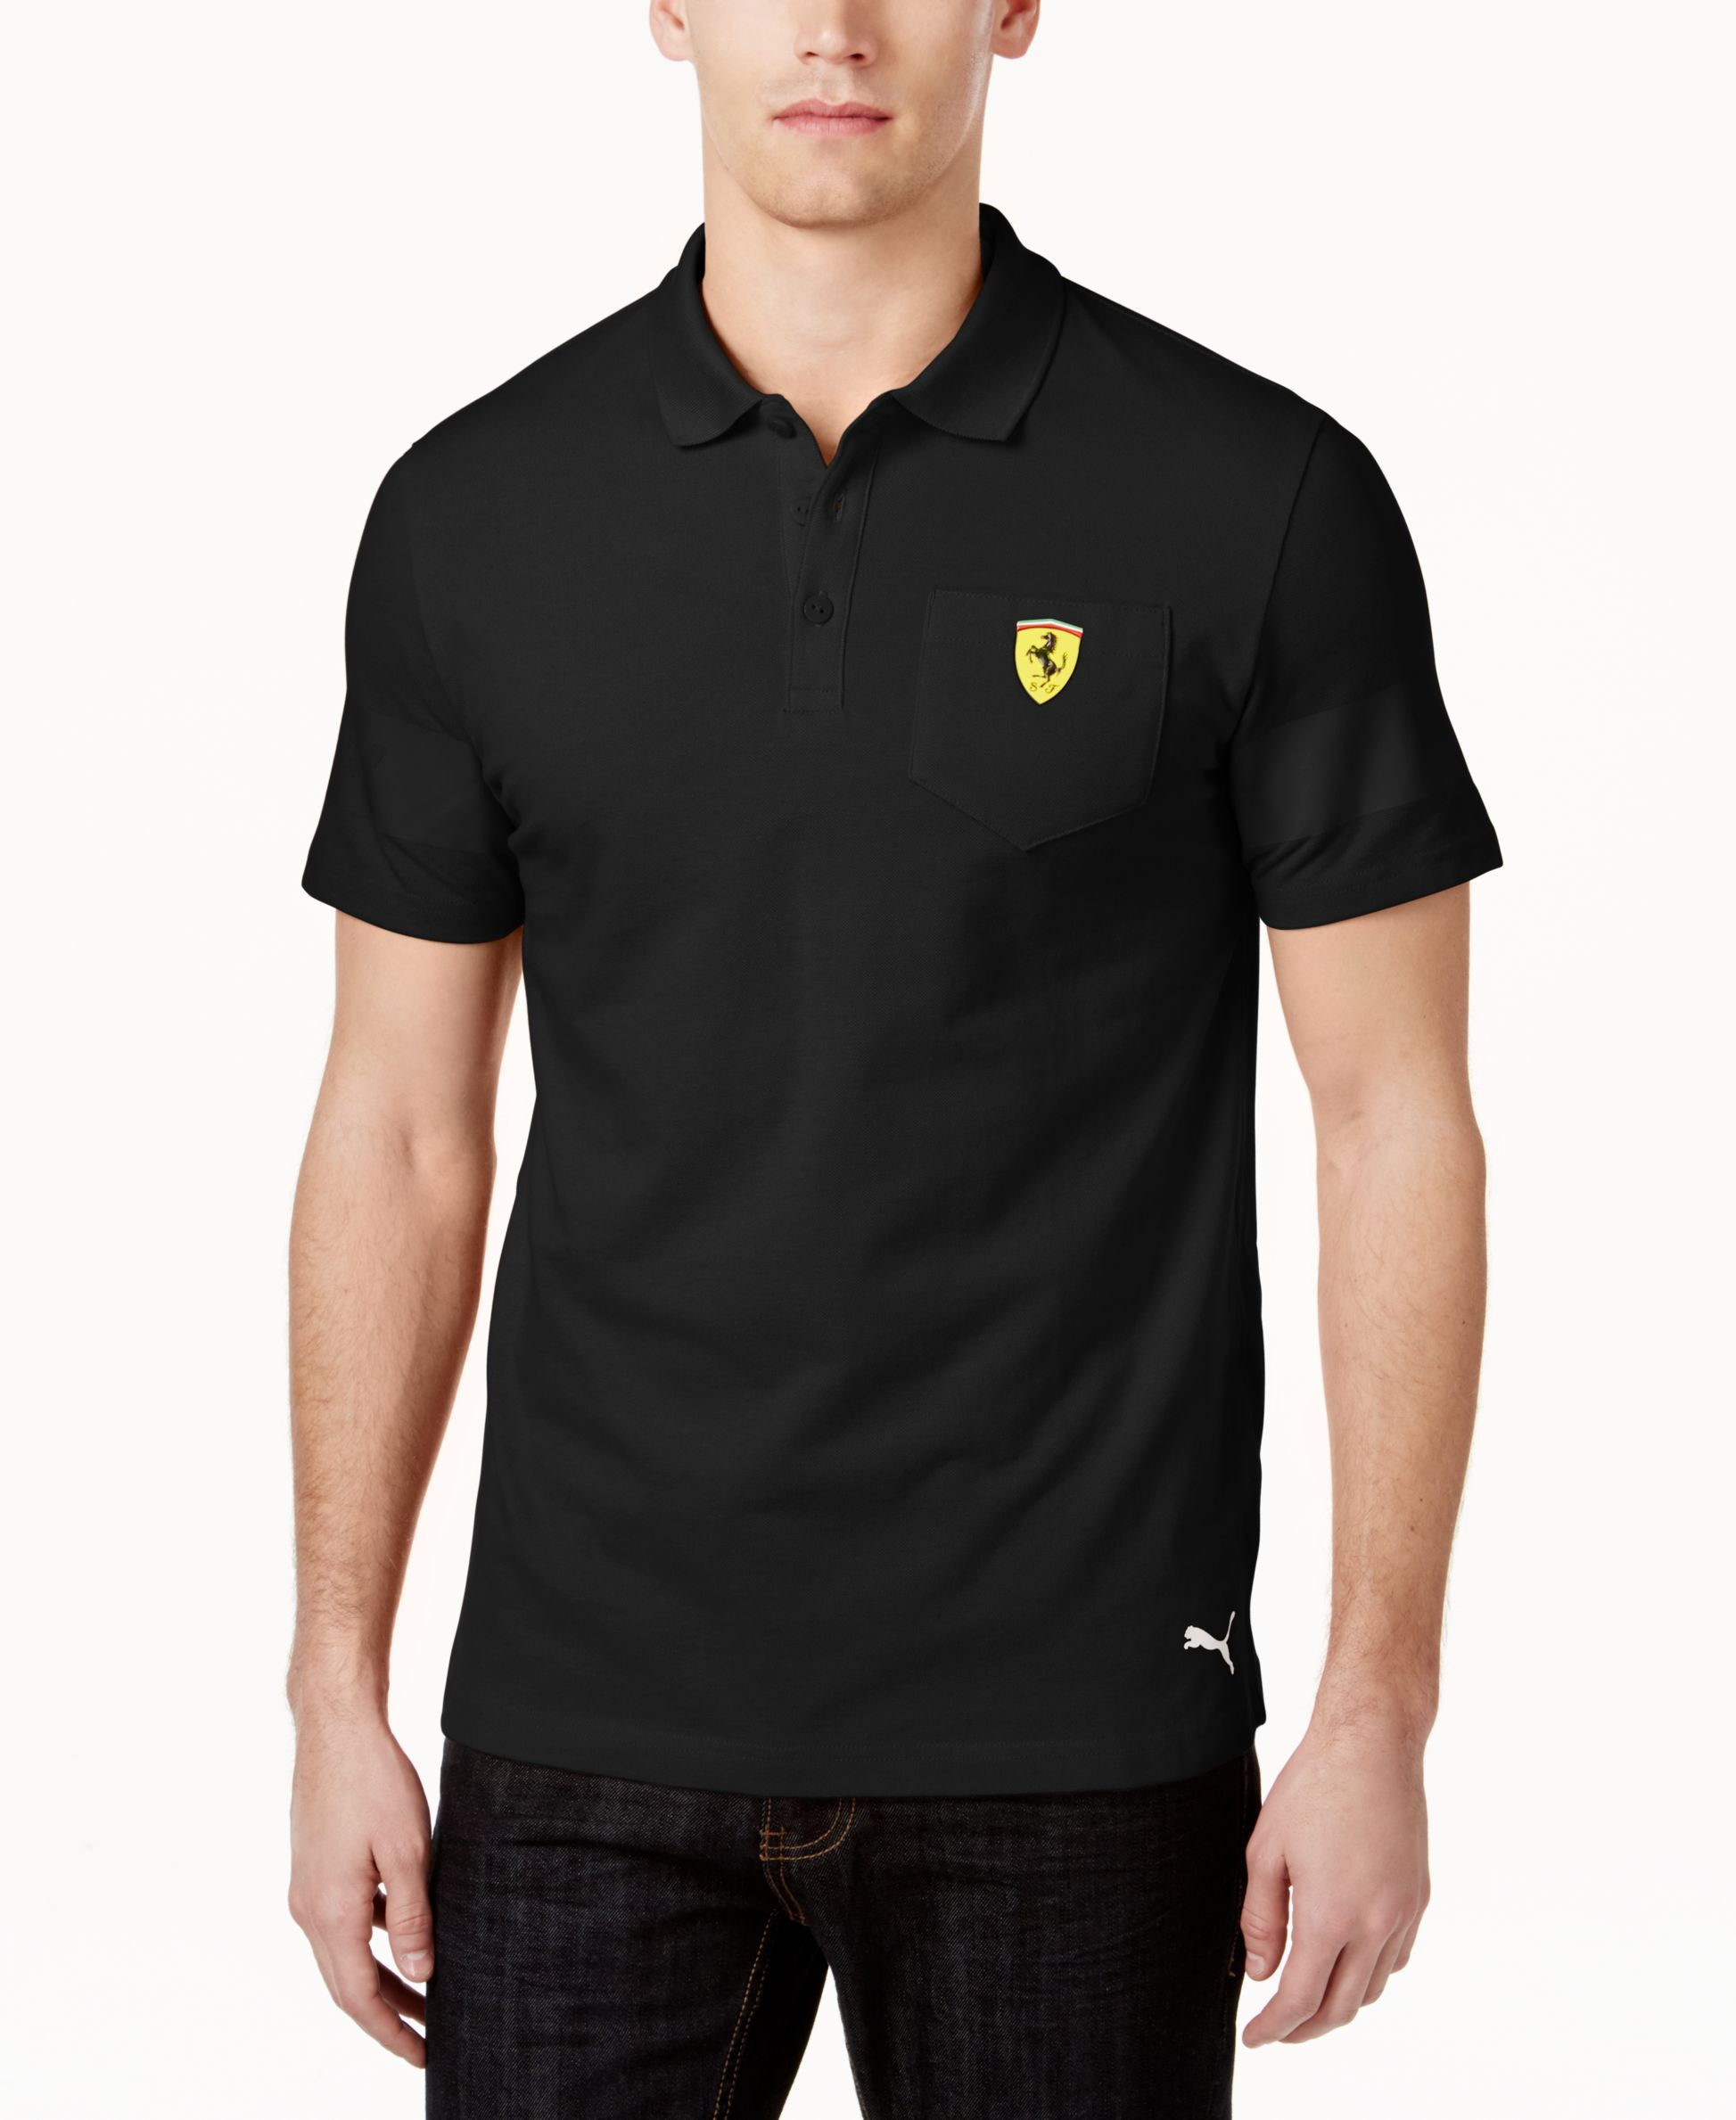 b608a257c24 Puma Men's Ferrari Polo Shirt | Ferrari Fashion | Puma mens, Polo ...